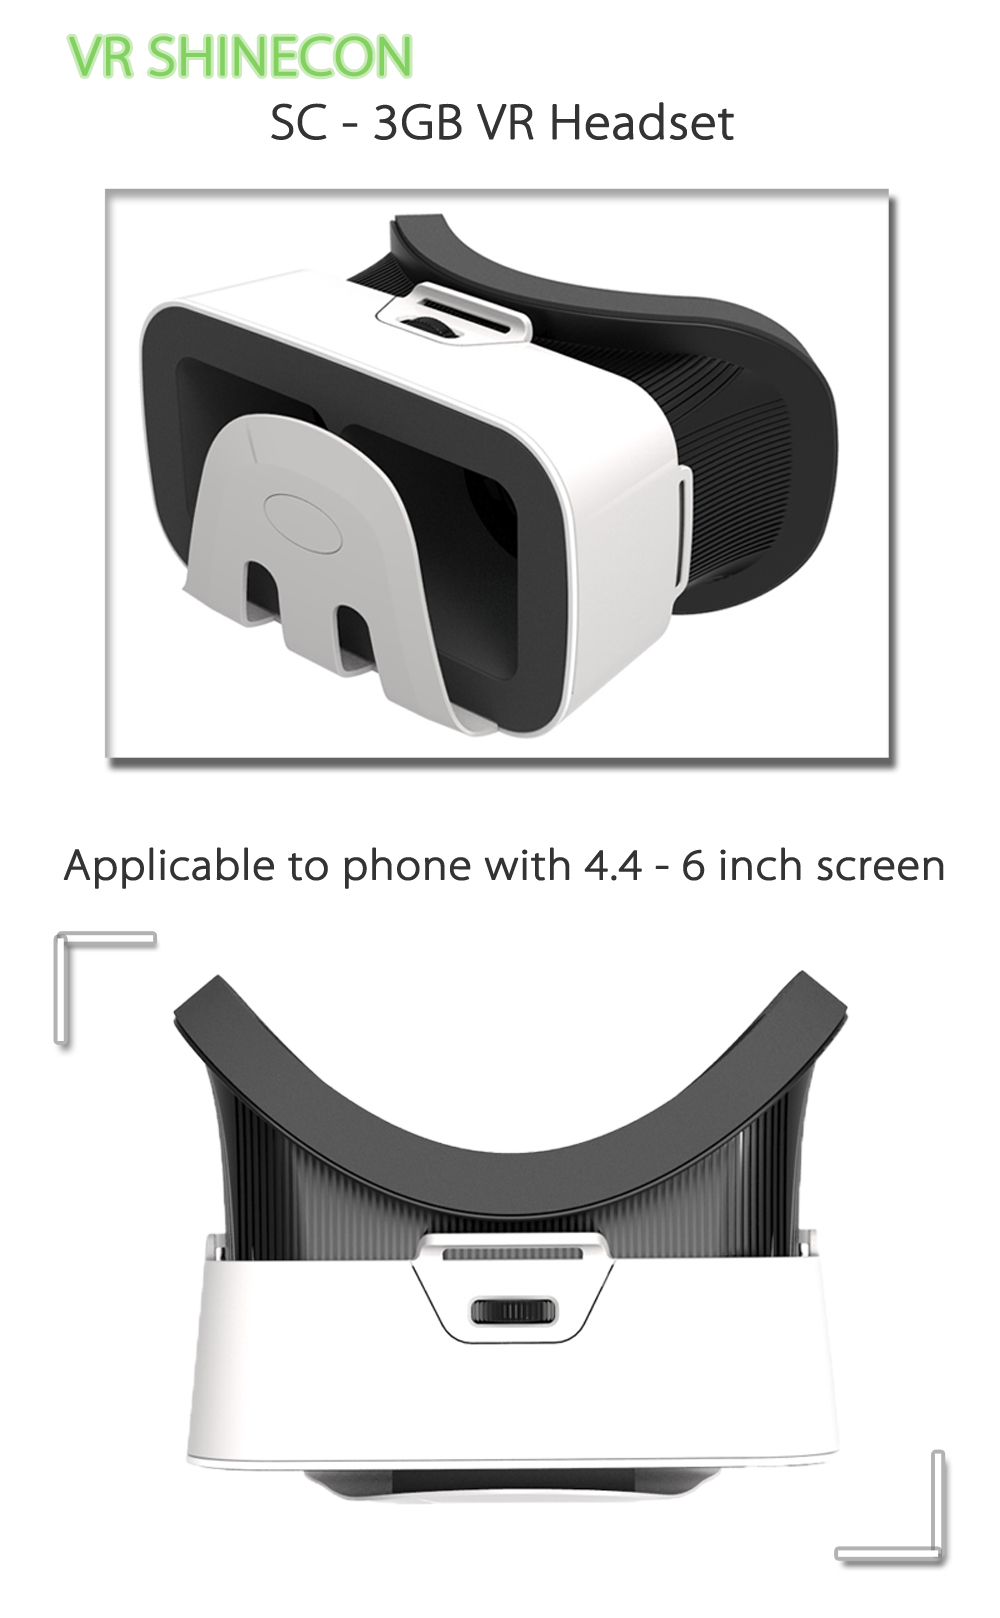 VR SHINECON SC - 3GB VR Headset 3D Glasses for 4.4 - 6 inch Phone